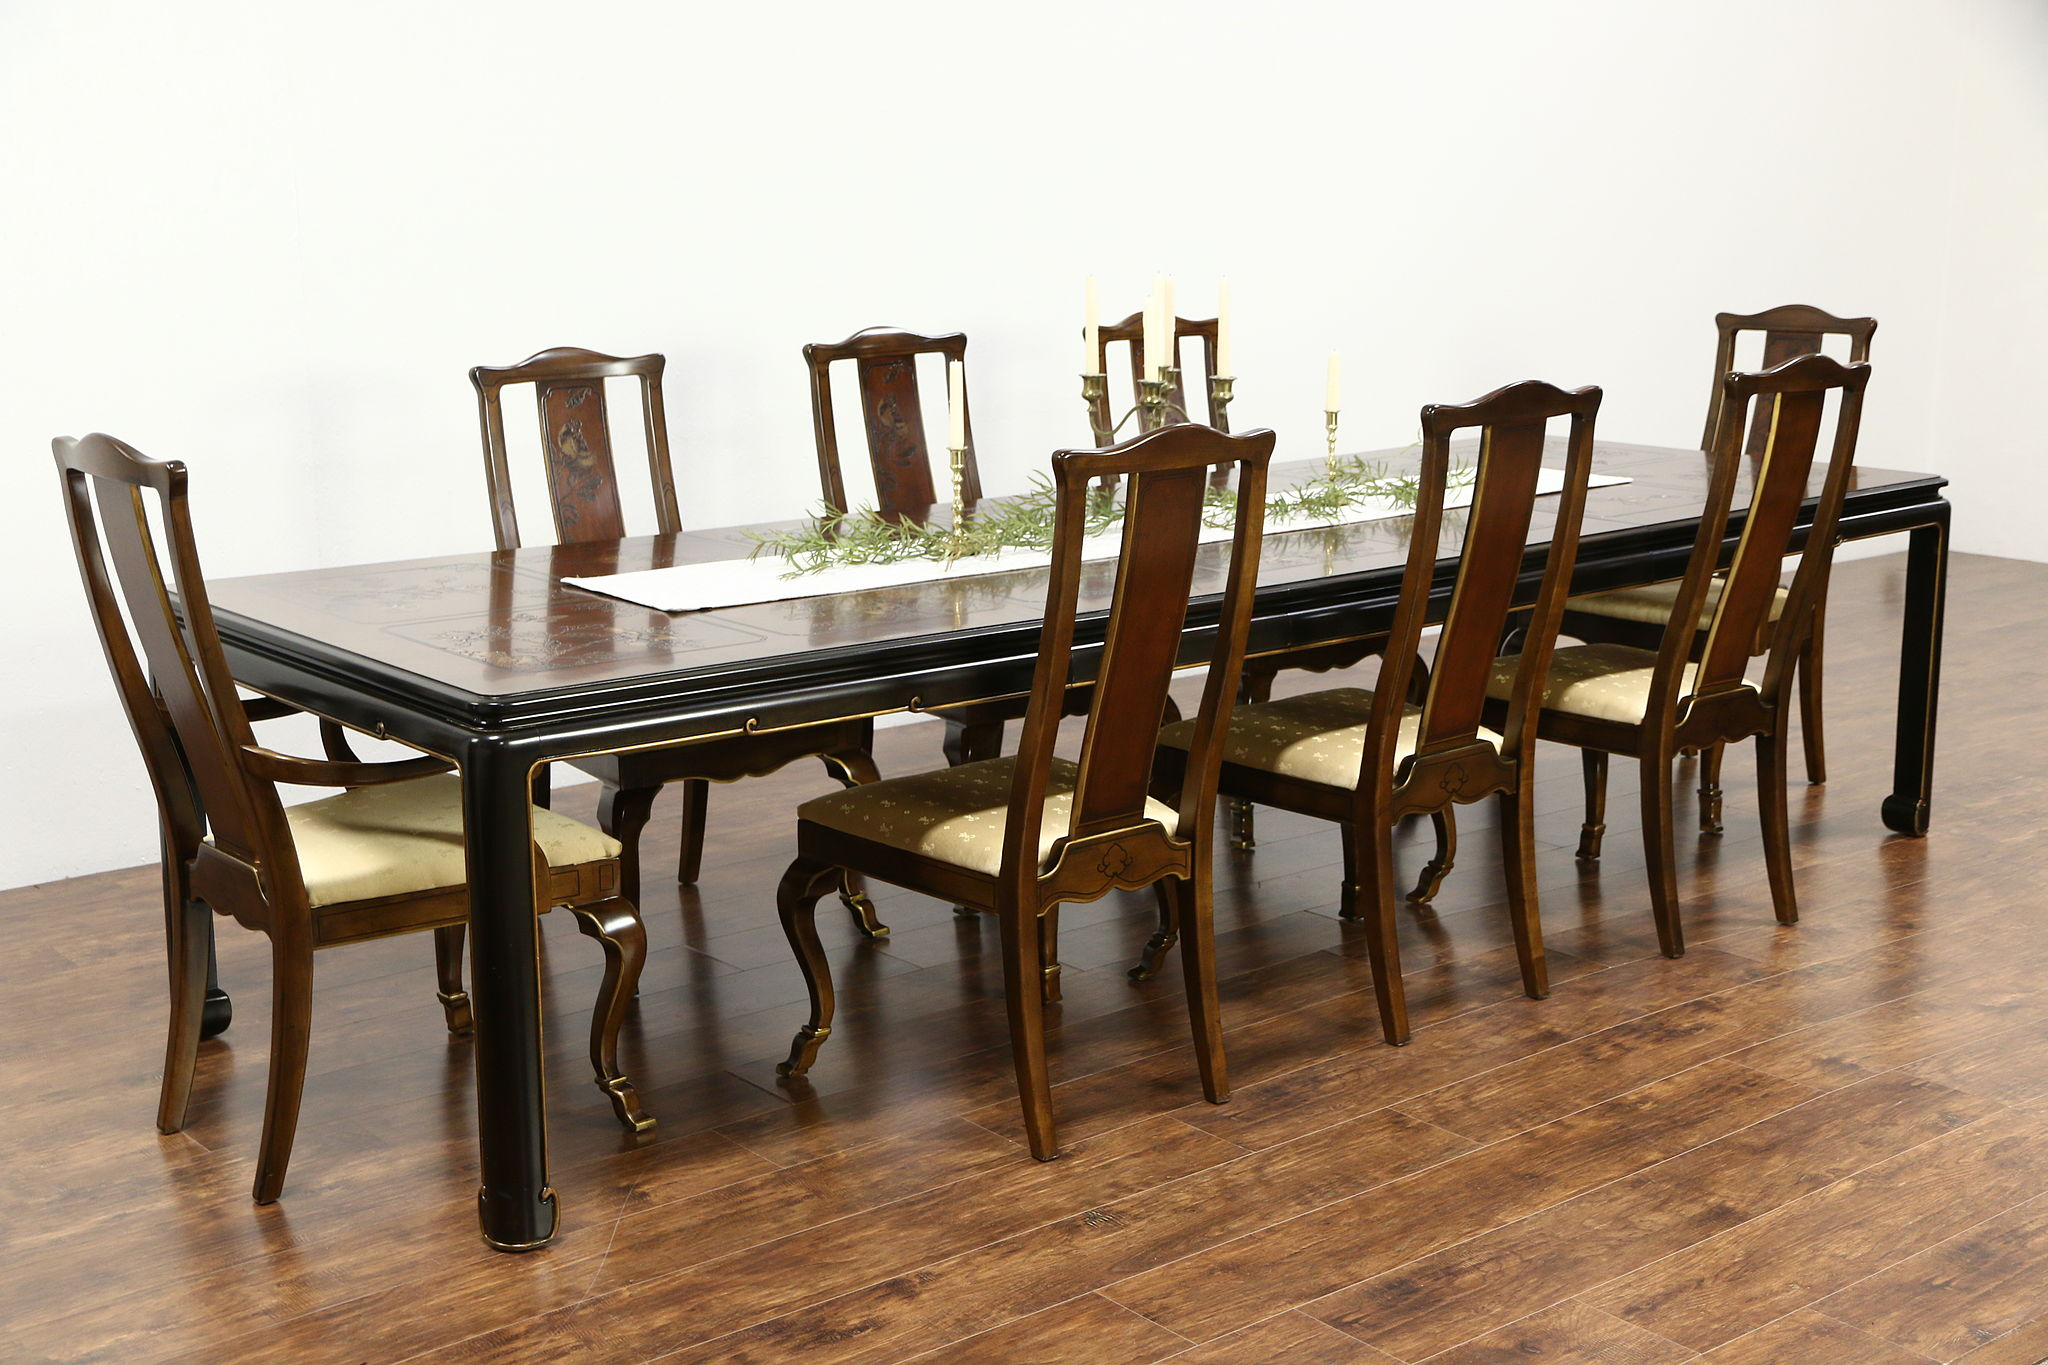 8 Chair Dining Set Drexel Heritage Connoisseur Chinese Motif Vintage Dining Set Table 8 Chairs